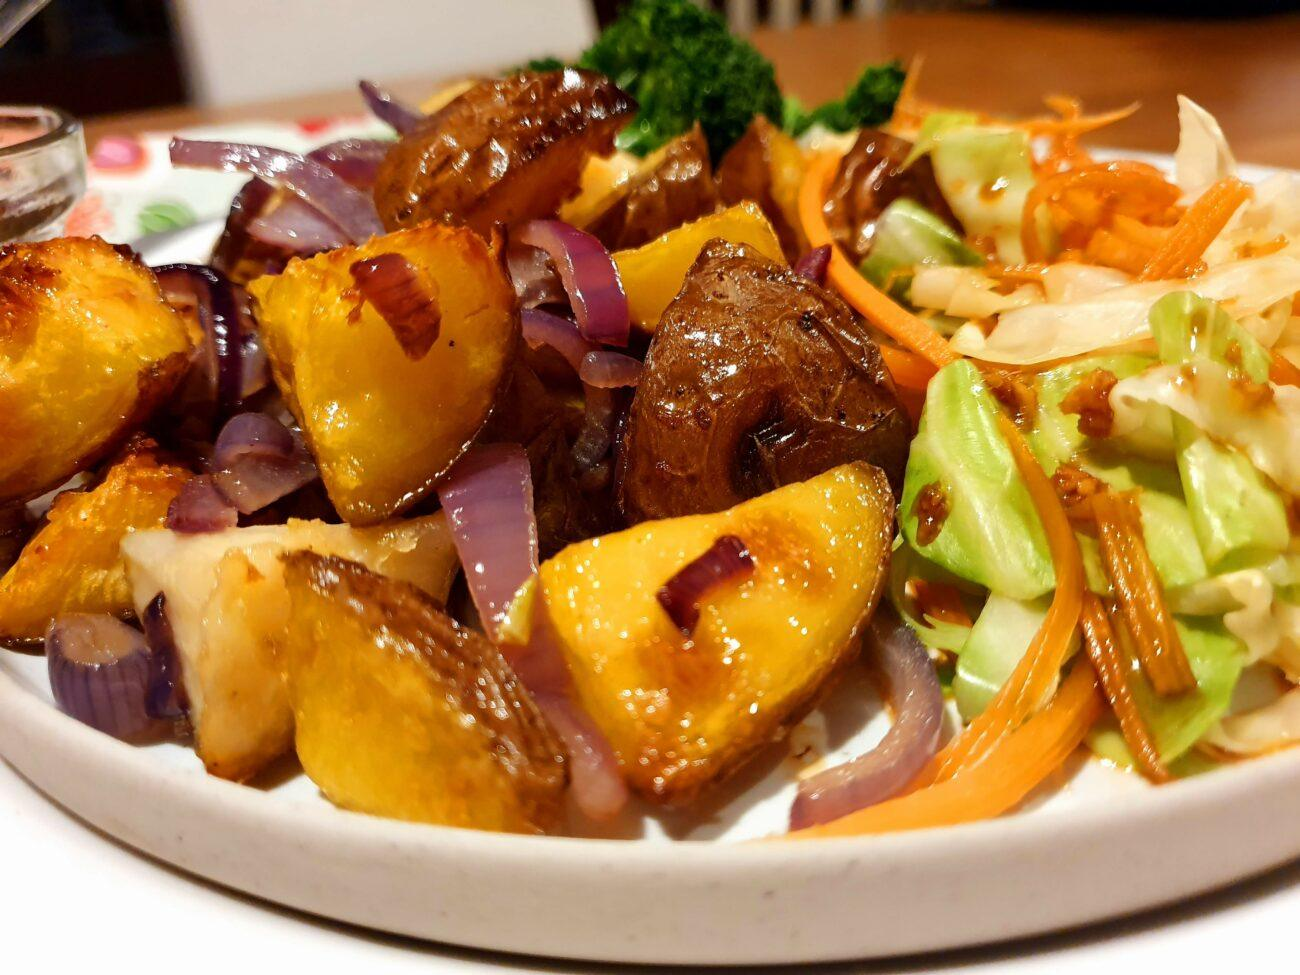 Stir fry Cabbage and Roast Potatoes